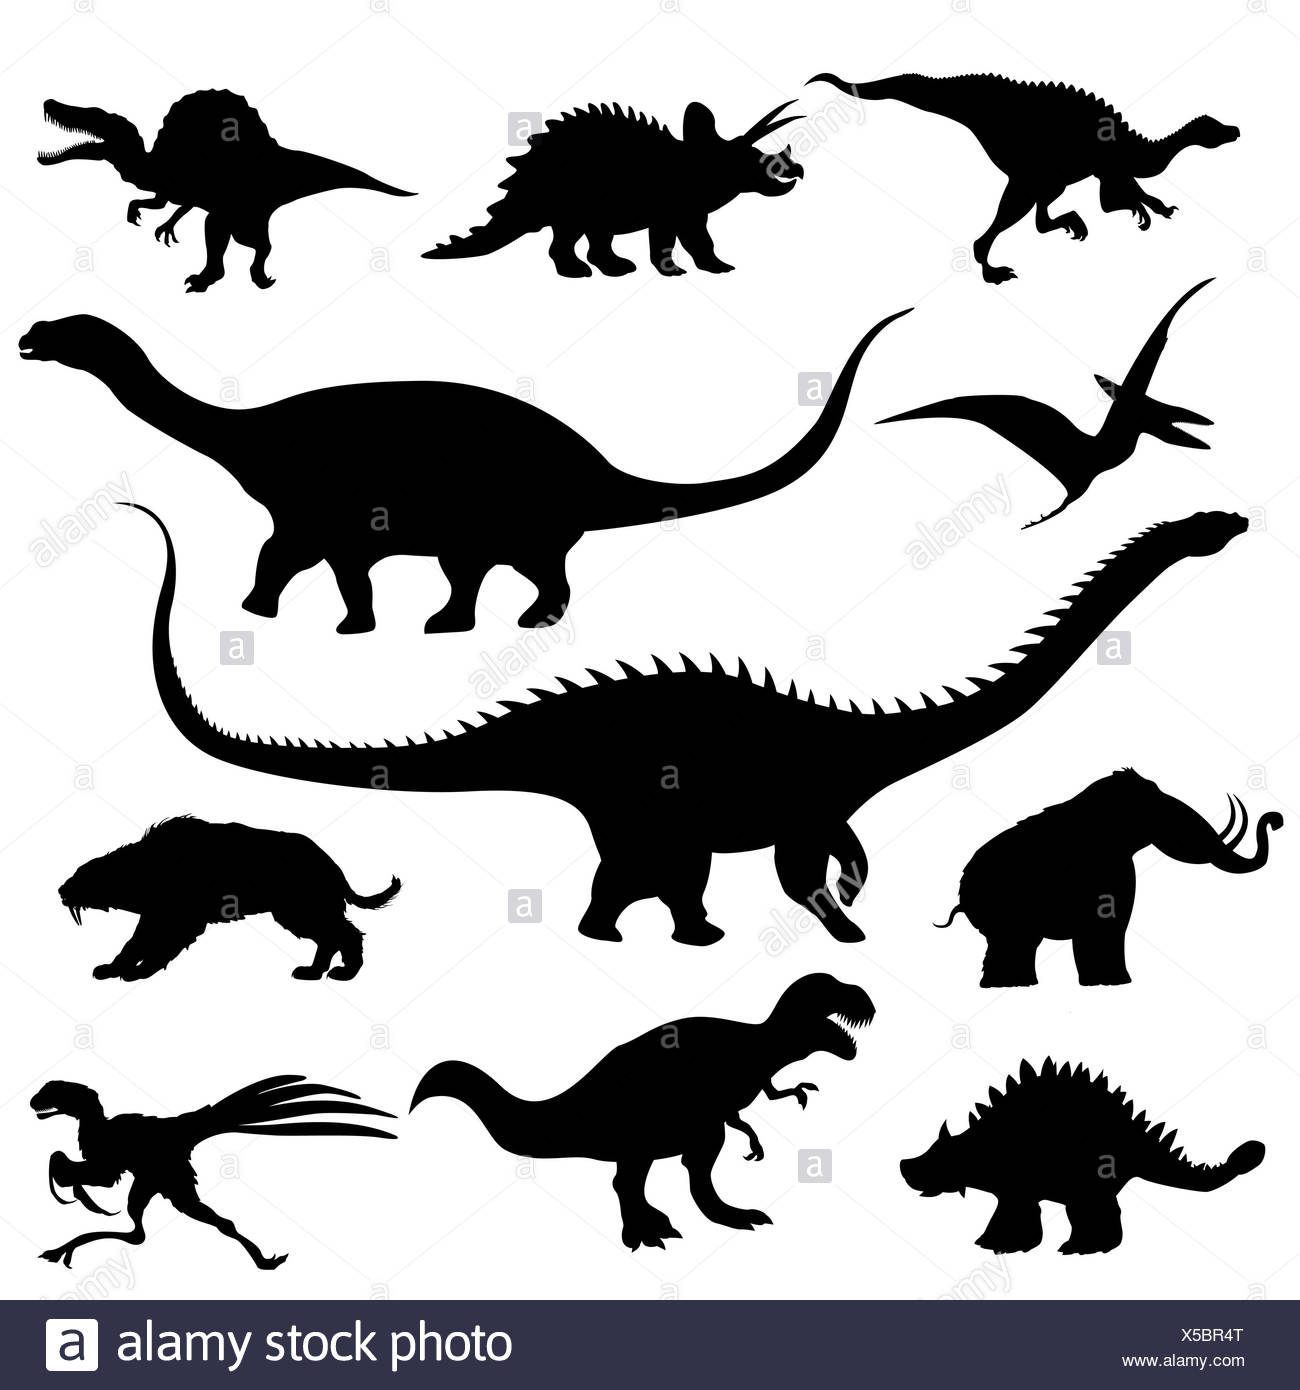 Dinosaur silhouettes collection - Stock Image